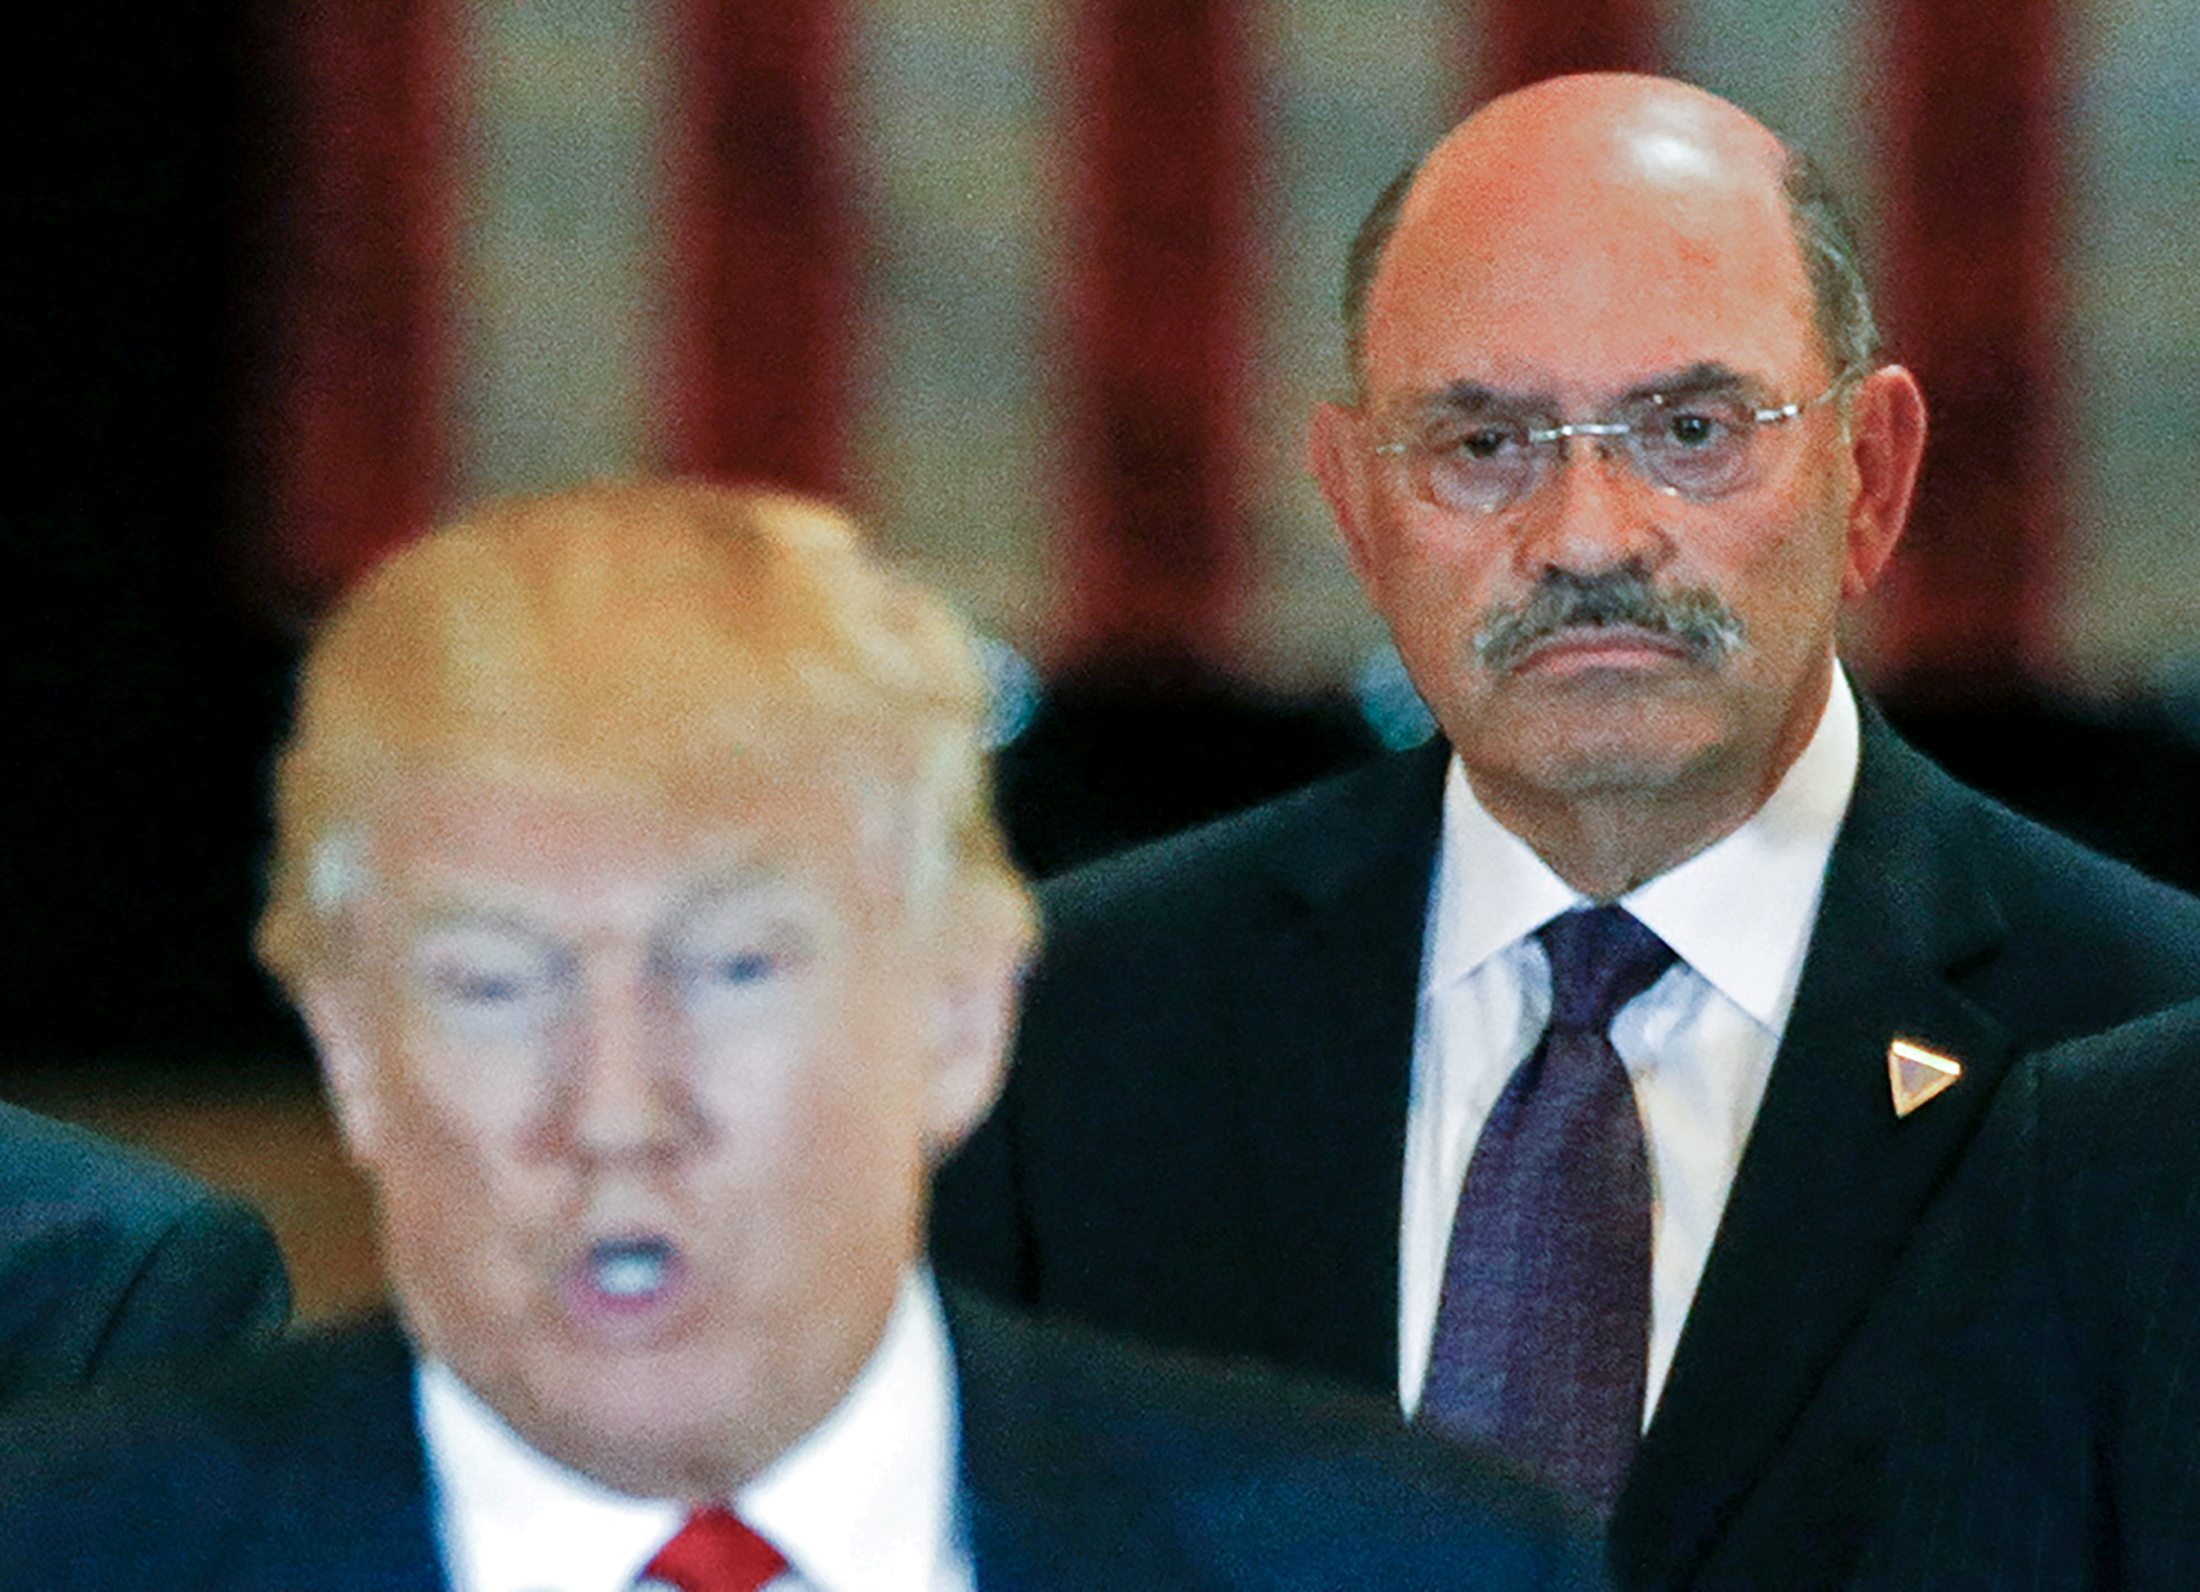 Trump Organization chief financial officer Allen Weisselberg looks on as then-U.S. Republican presidential candidate Donald Trump speaks during a news conference at Trump Tower in Manhattan, New York, U.S., May 31, 2016. REUTERS/Carlo Allegri